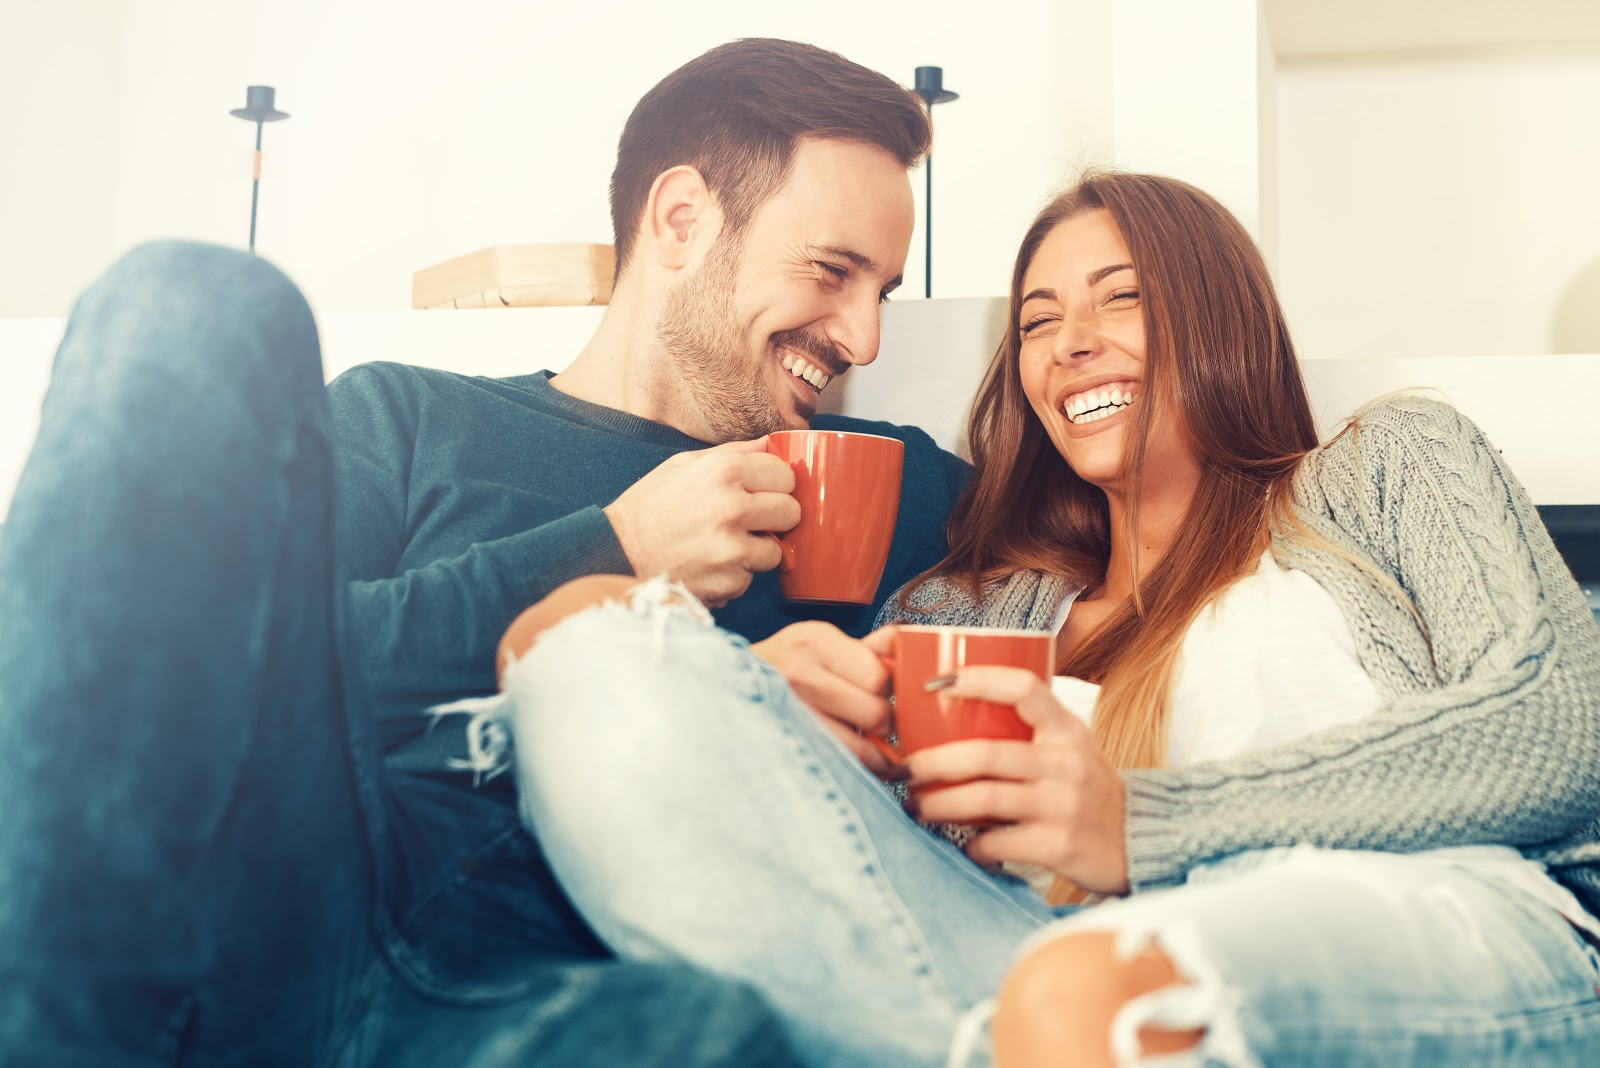 A couple sitting on a couch laughing together after setting marriage boundaries